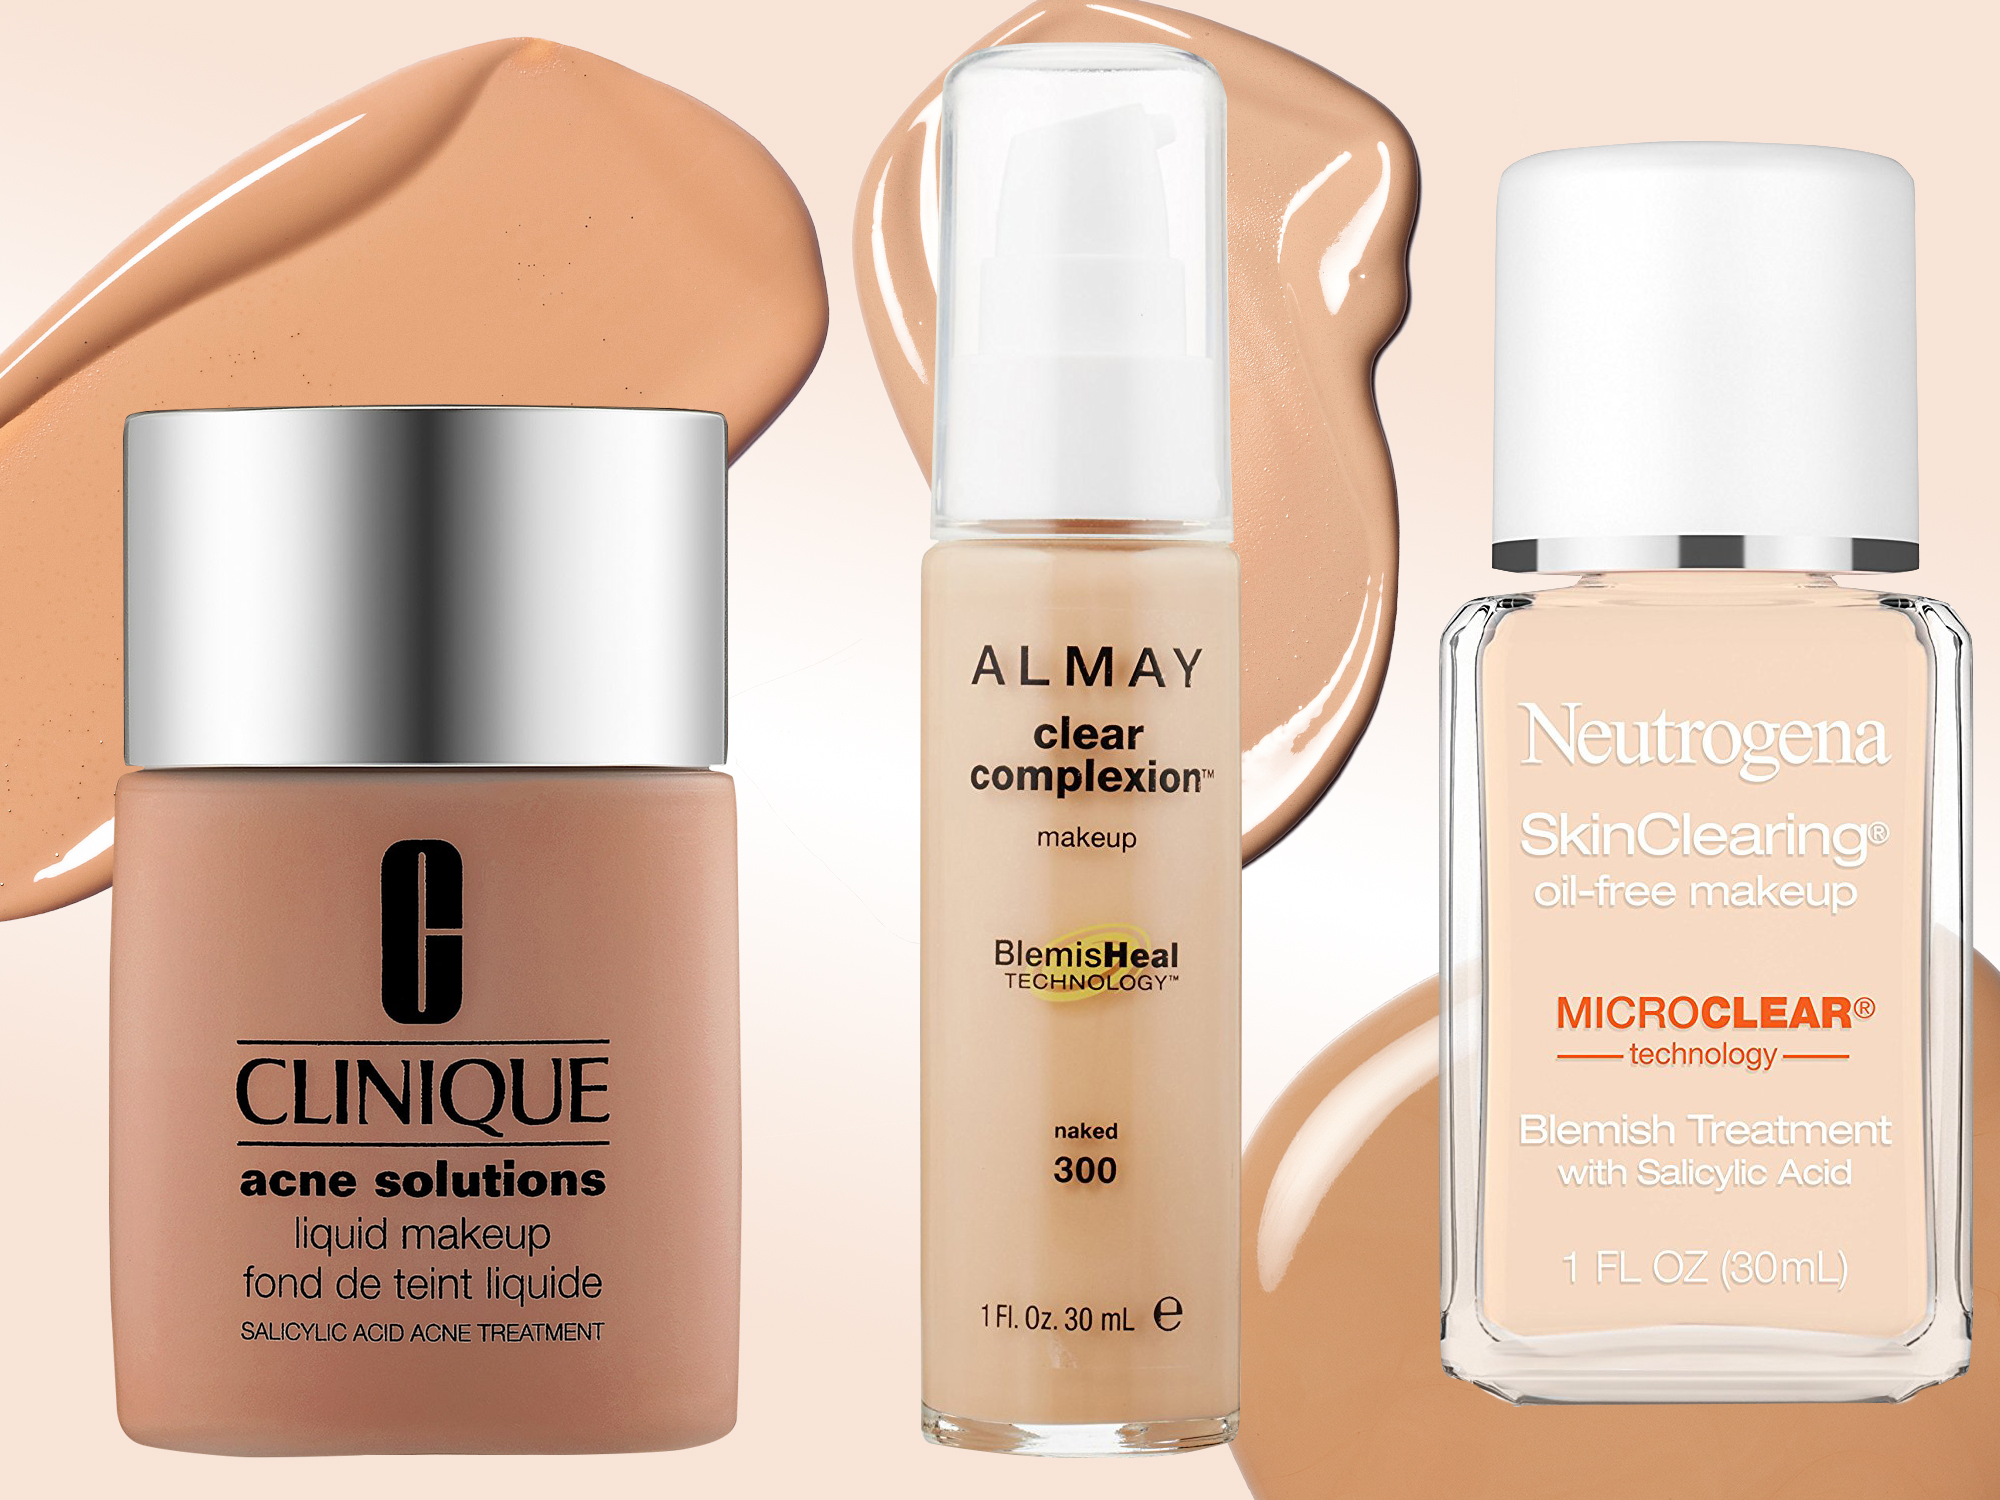 The 4 Best Foundations for Acne-Prone Skin, According to Dermatologists